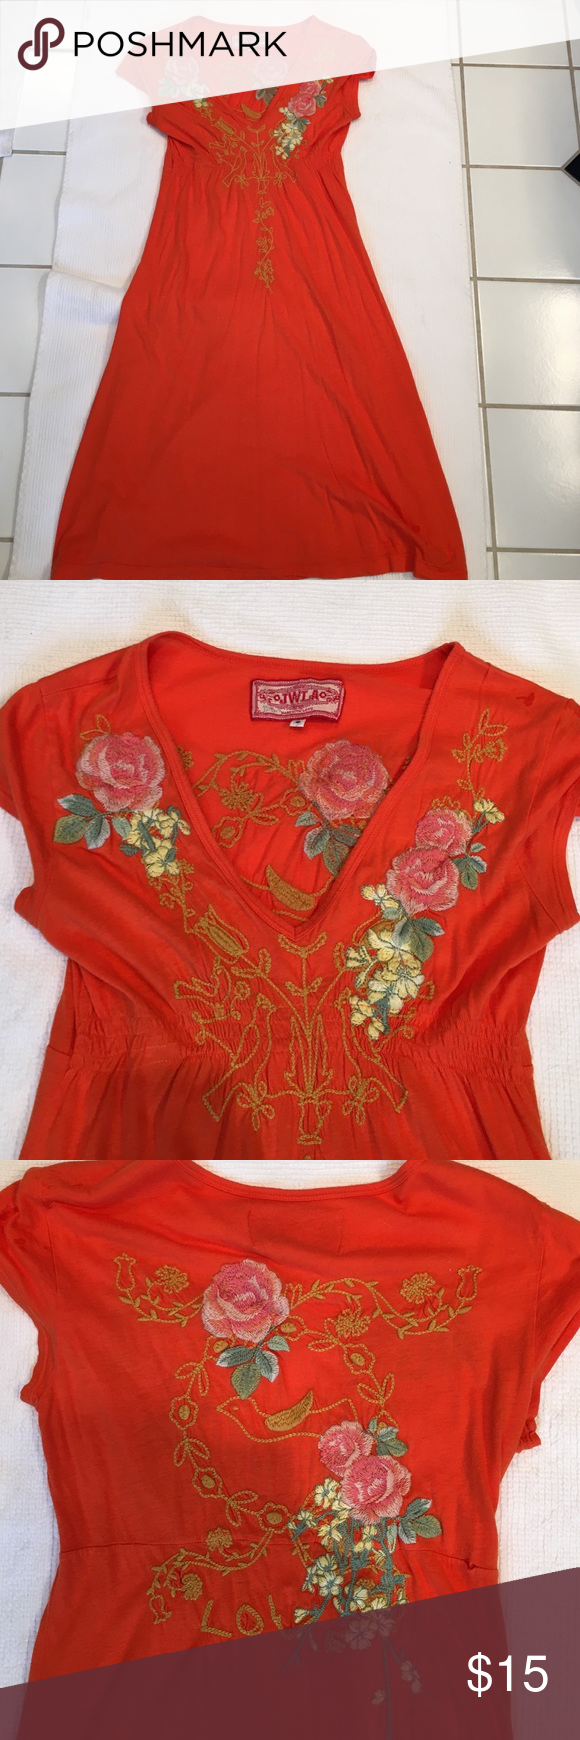 JWLA Dress Cute dress in good condition. Has a seam that needs to be repaired. Dresses